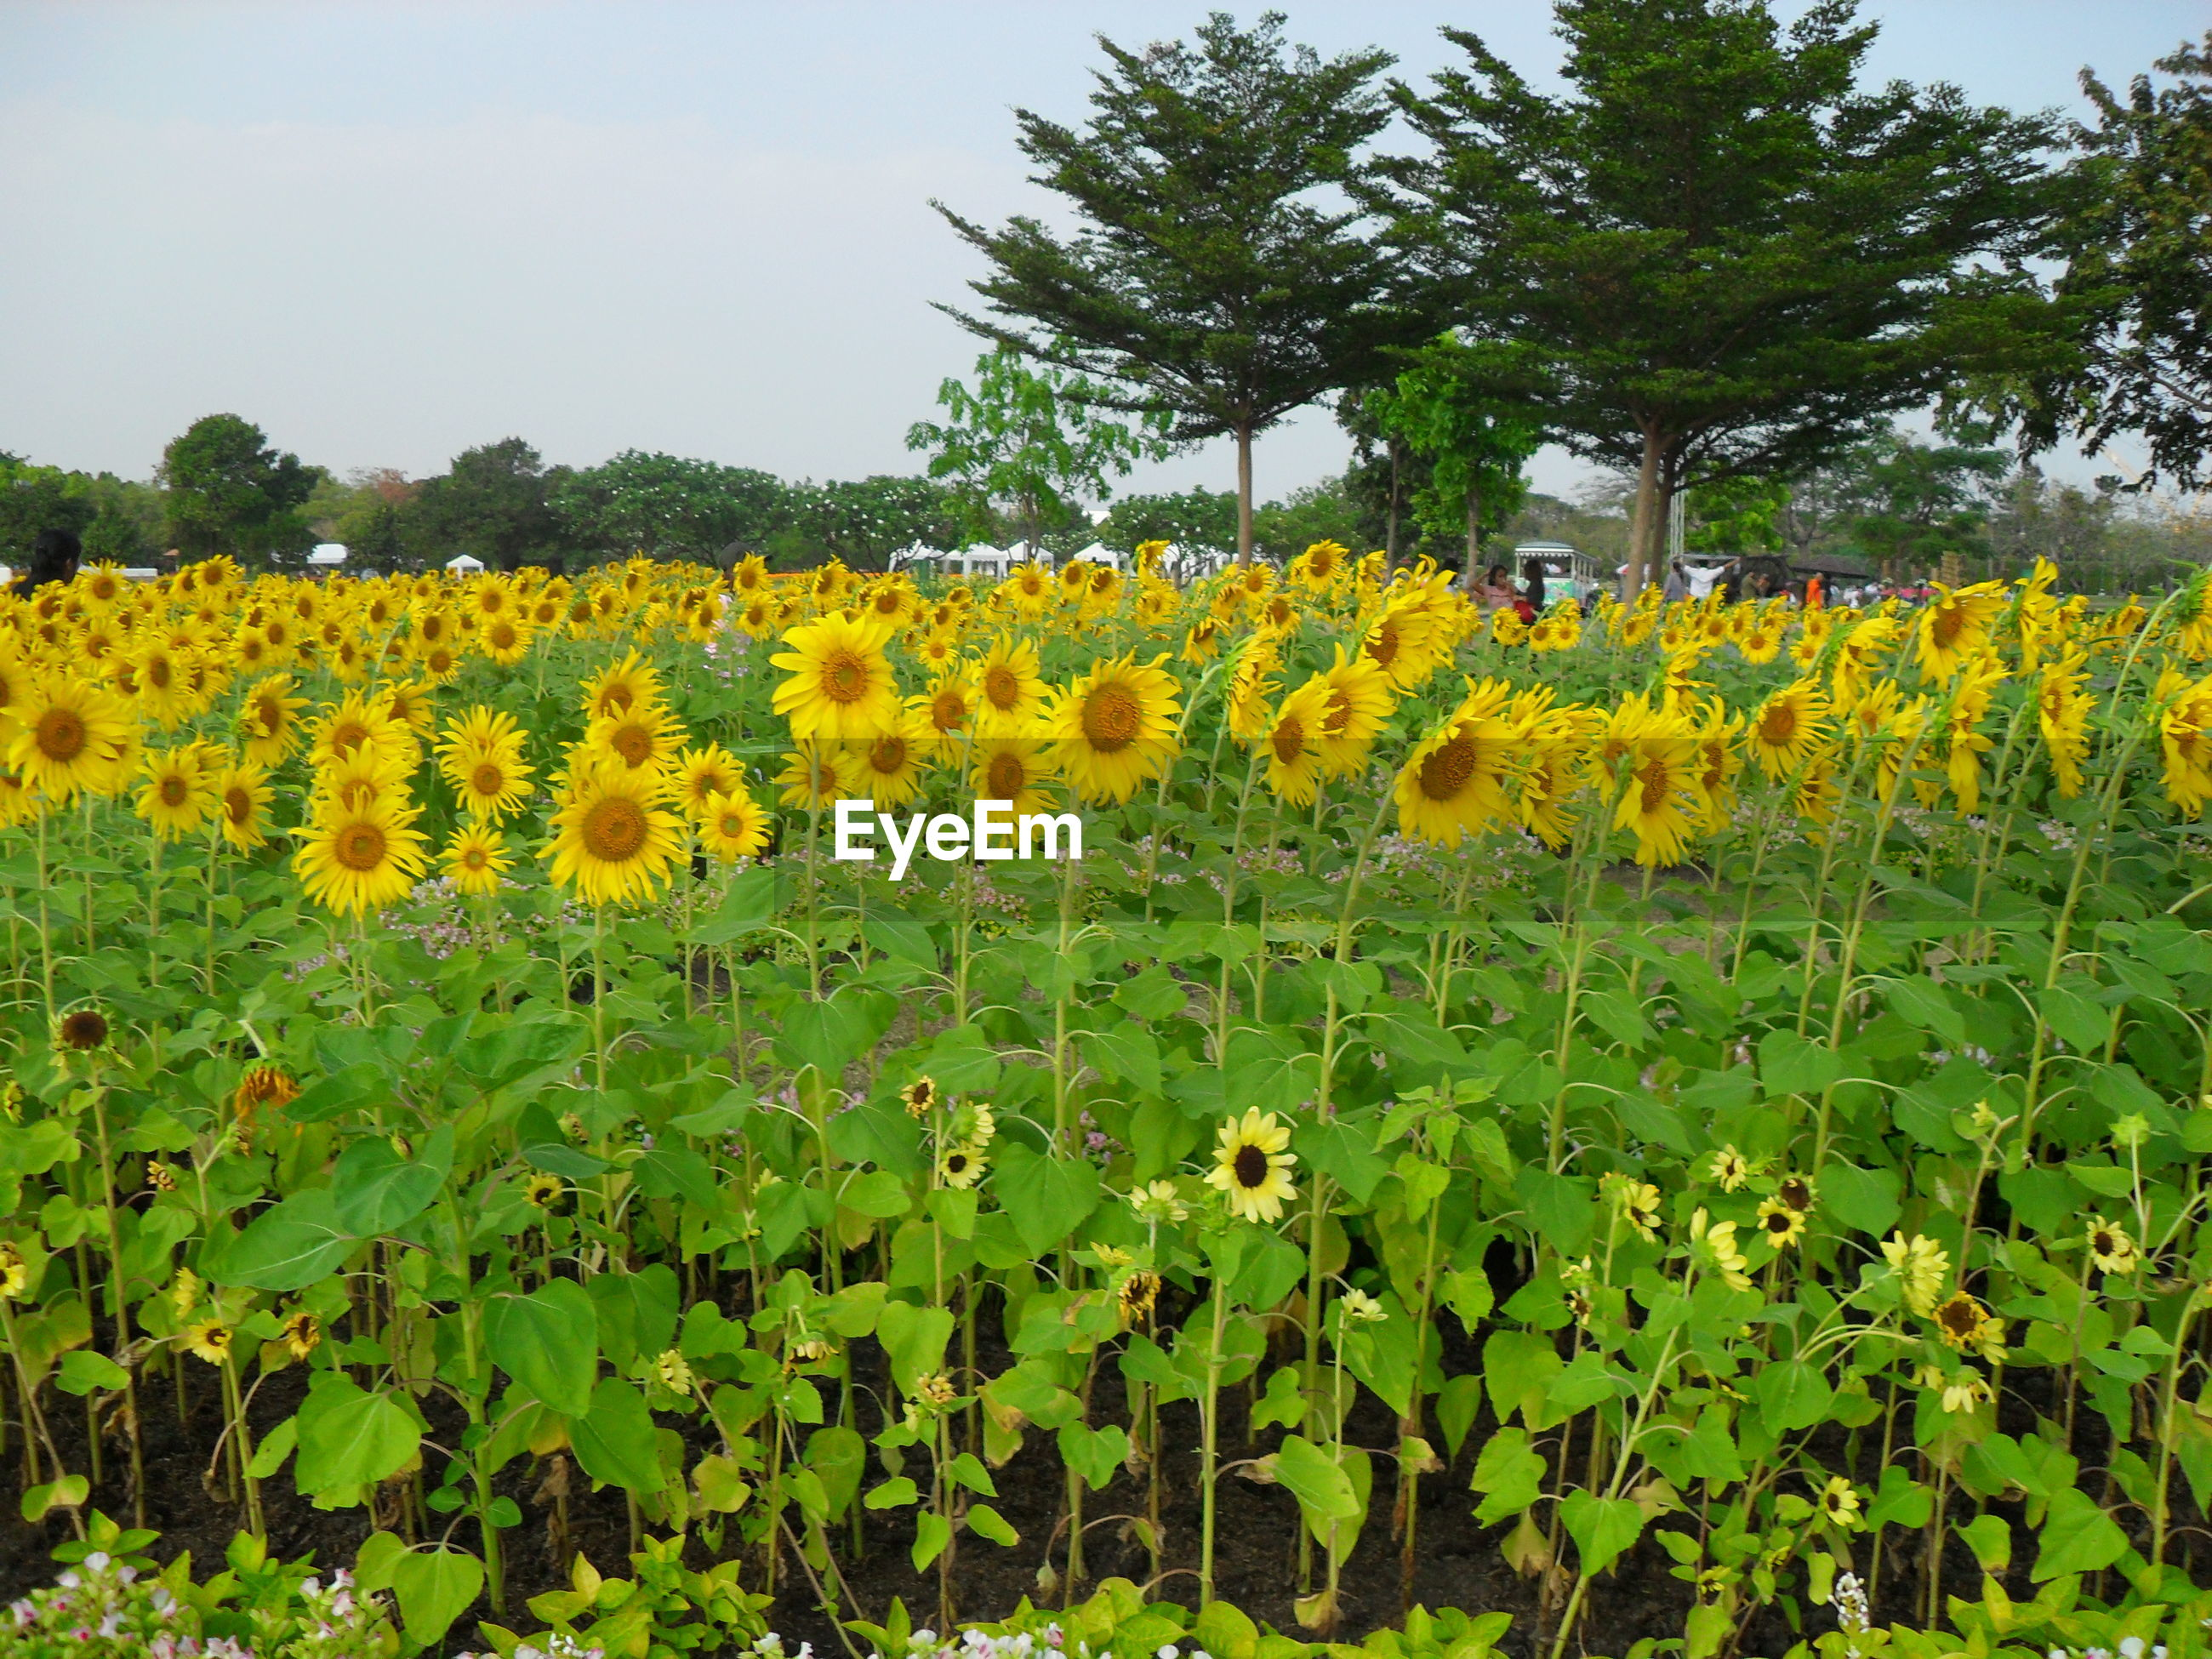 SCENIC VIEW OF SUNFLOWERS GROWING ON FIELD